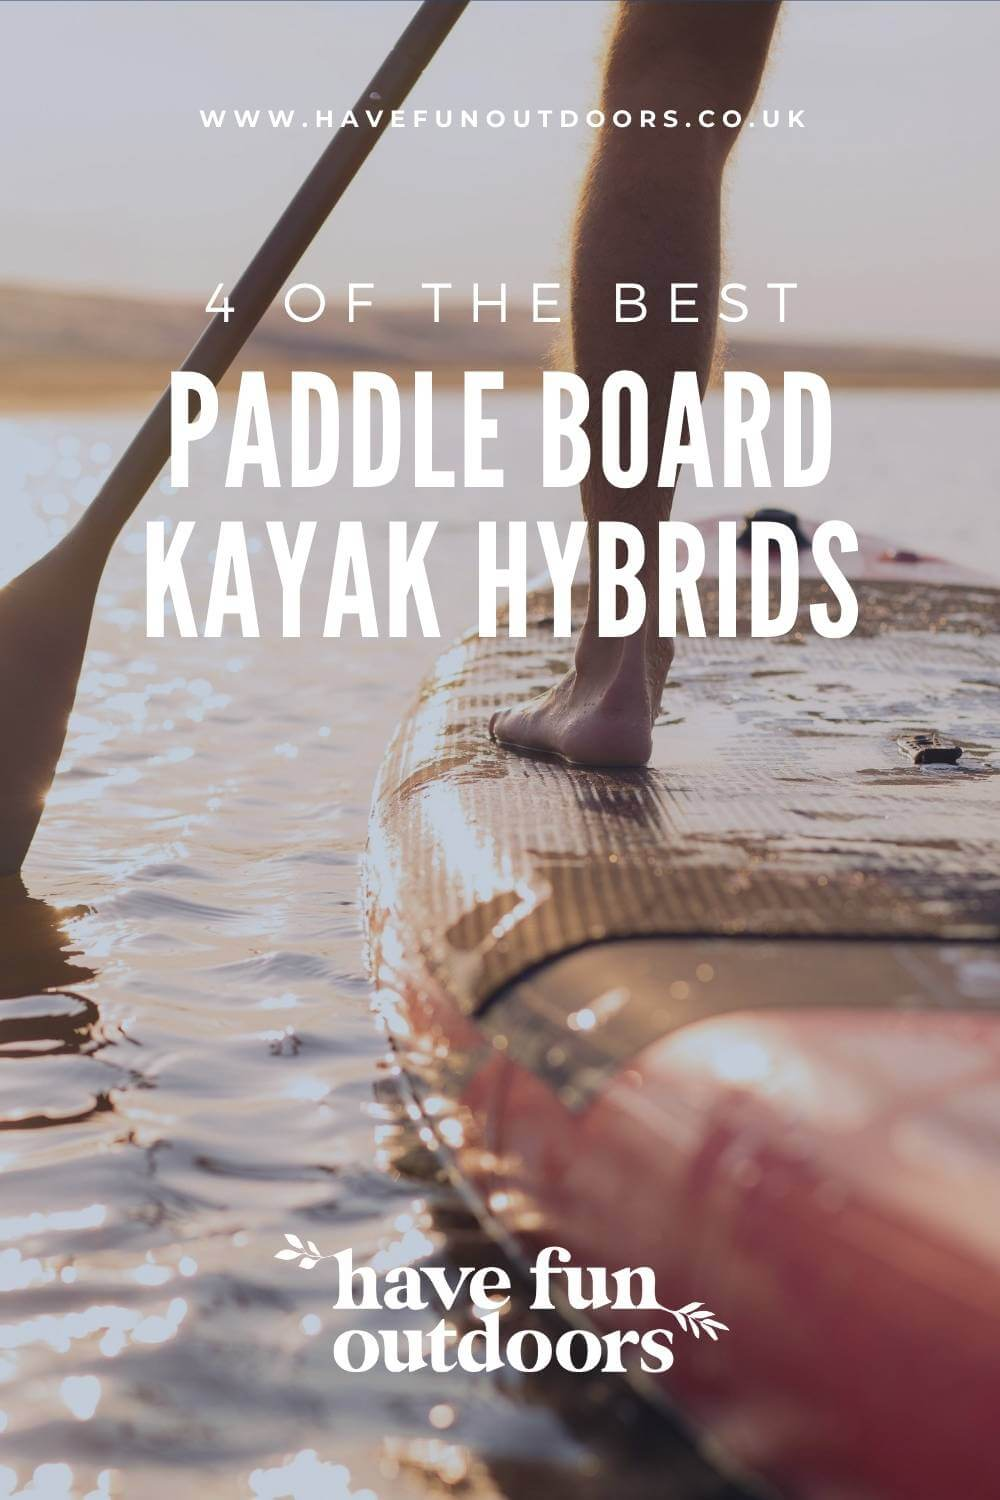 4 Of The Best Paddle Board Kayak Hybrids For You To Try